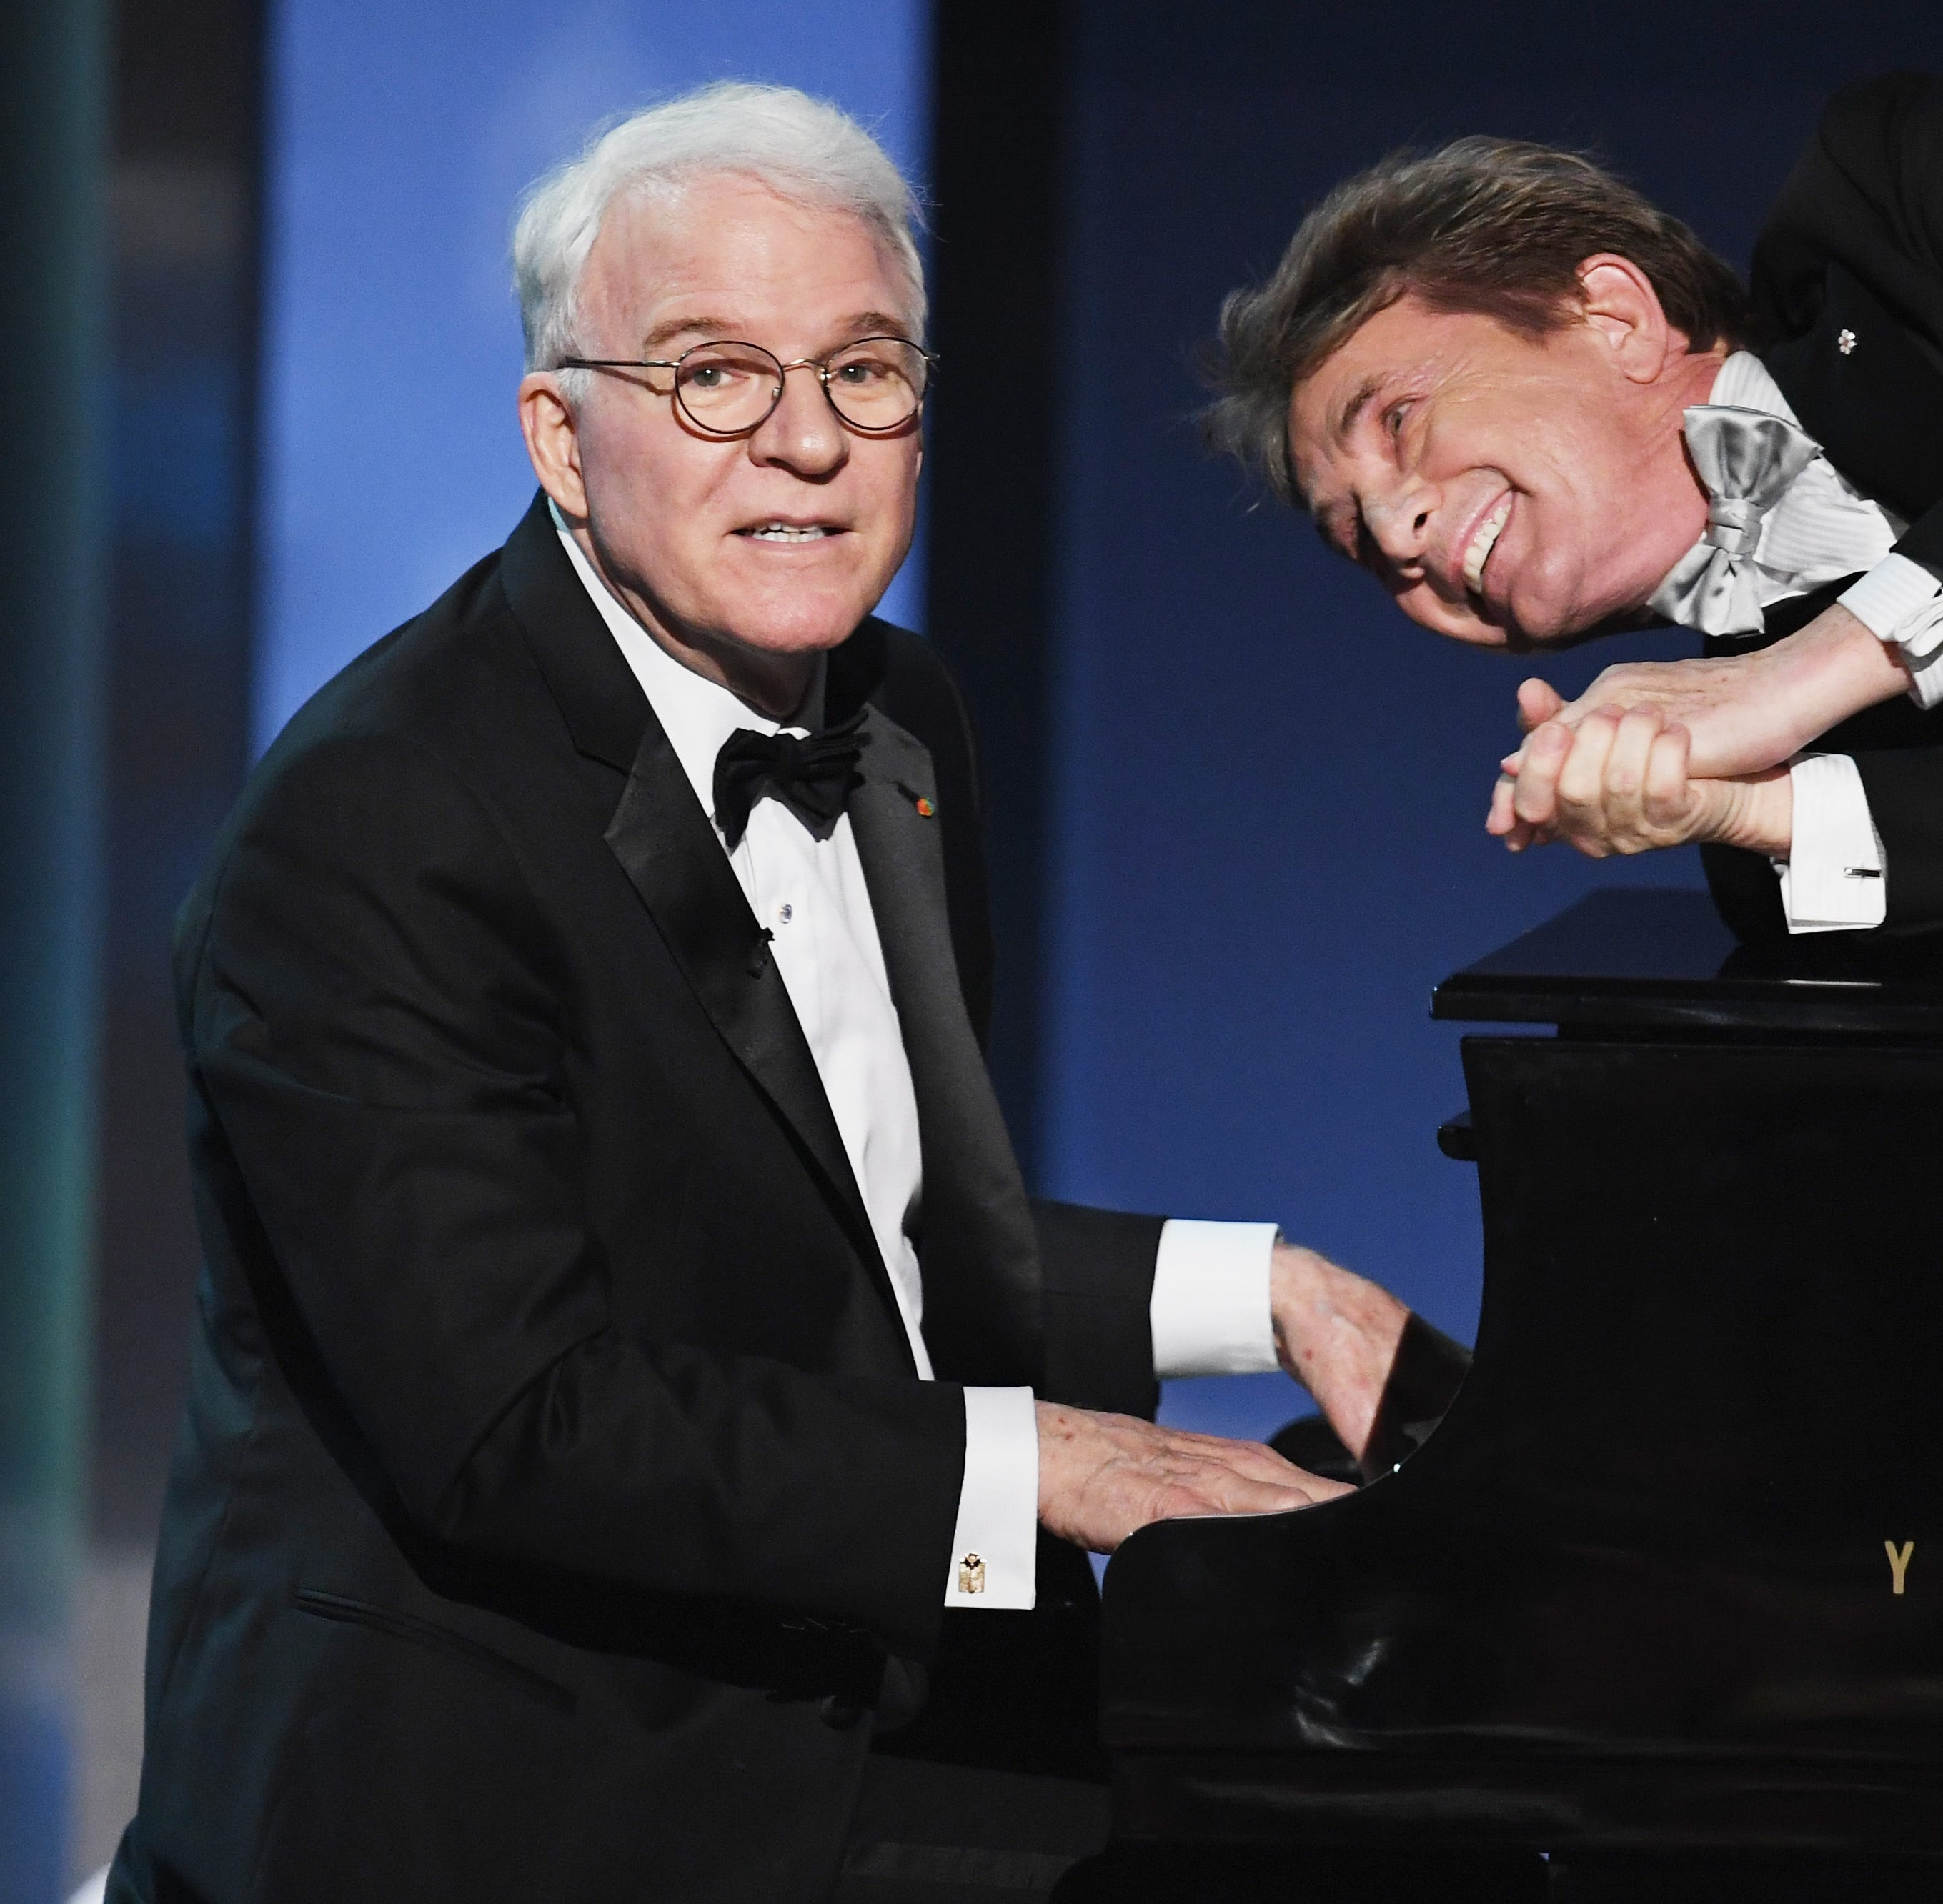 The incomparable Steve Martin, Martin Short prove irresistible at Resch